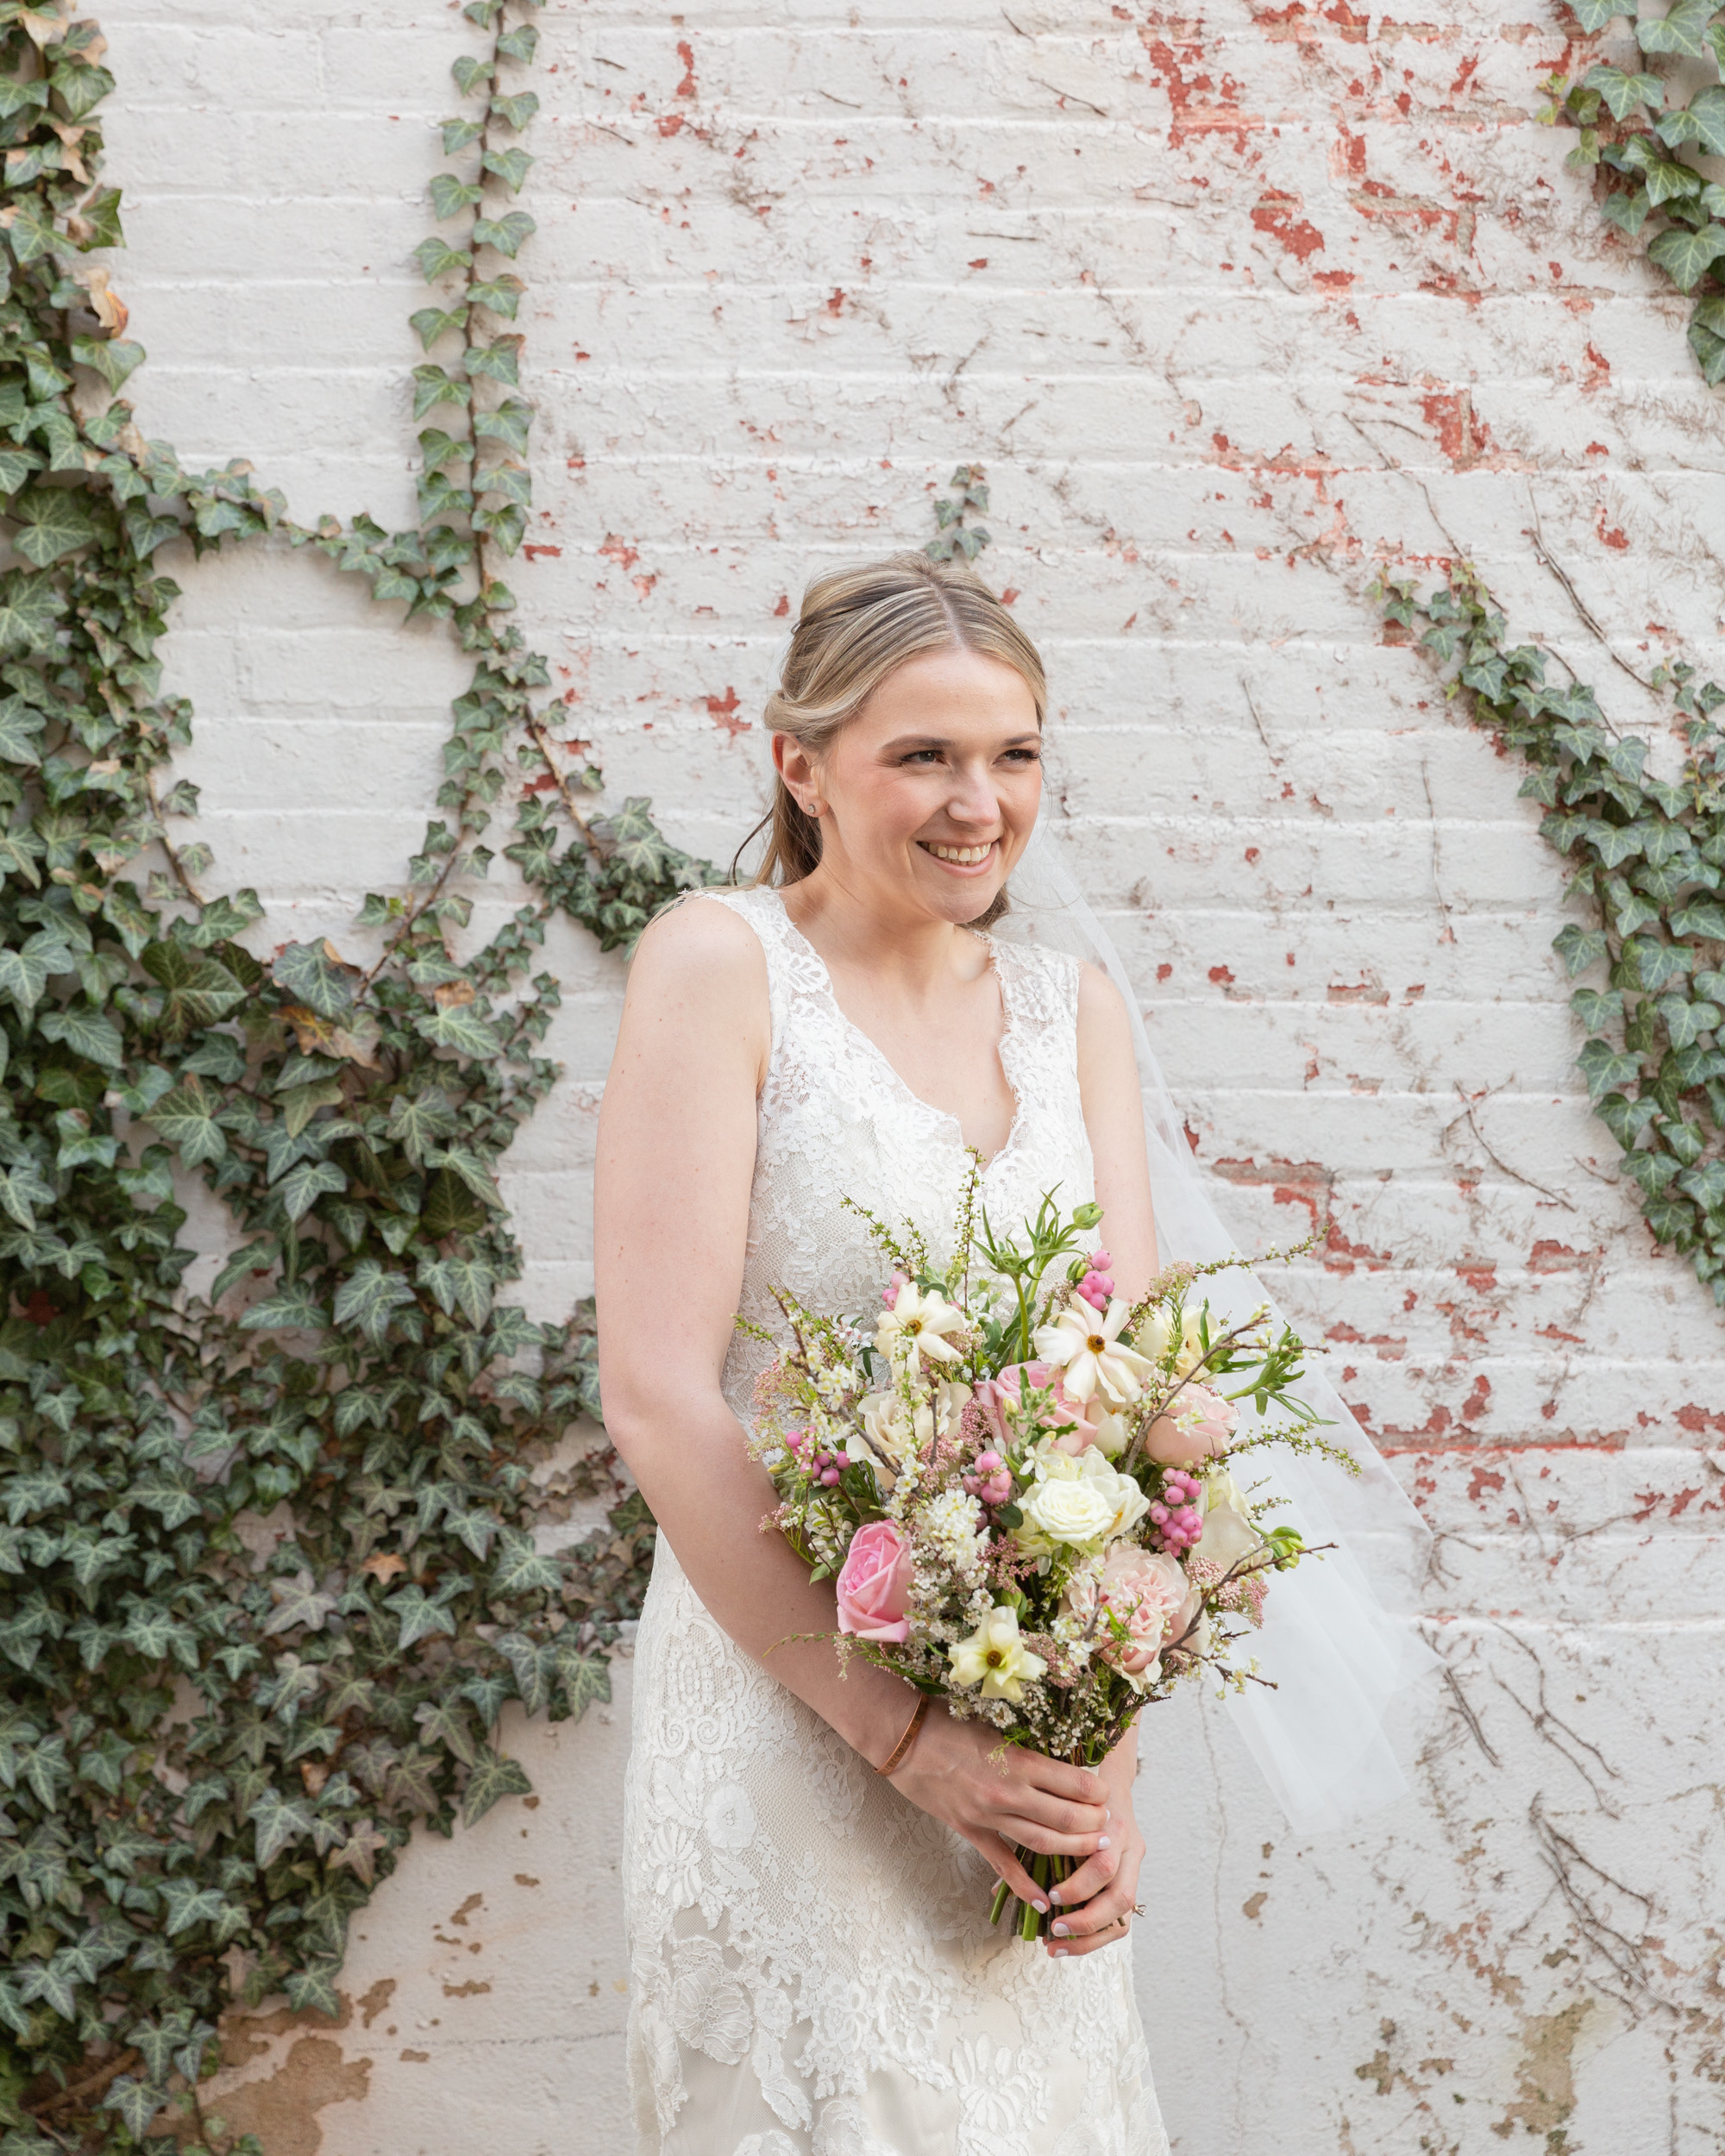 An elegant bride in front of a vintage white brick wall with ivy smiles by Laura Billingham Photography